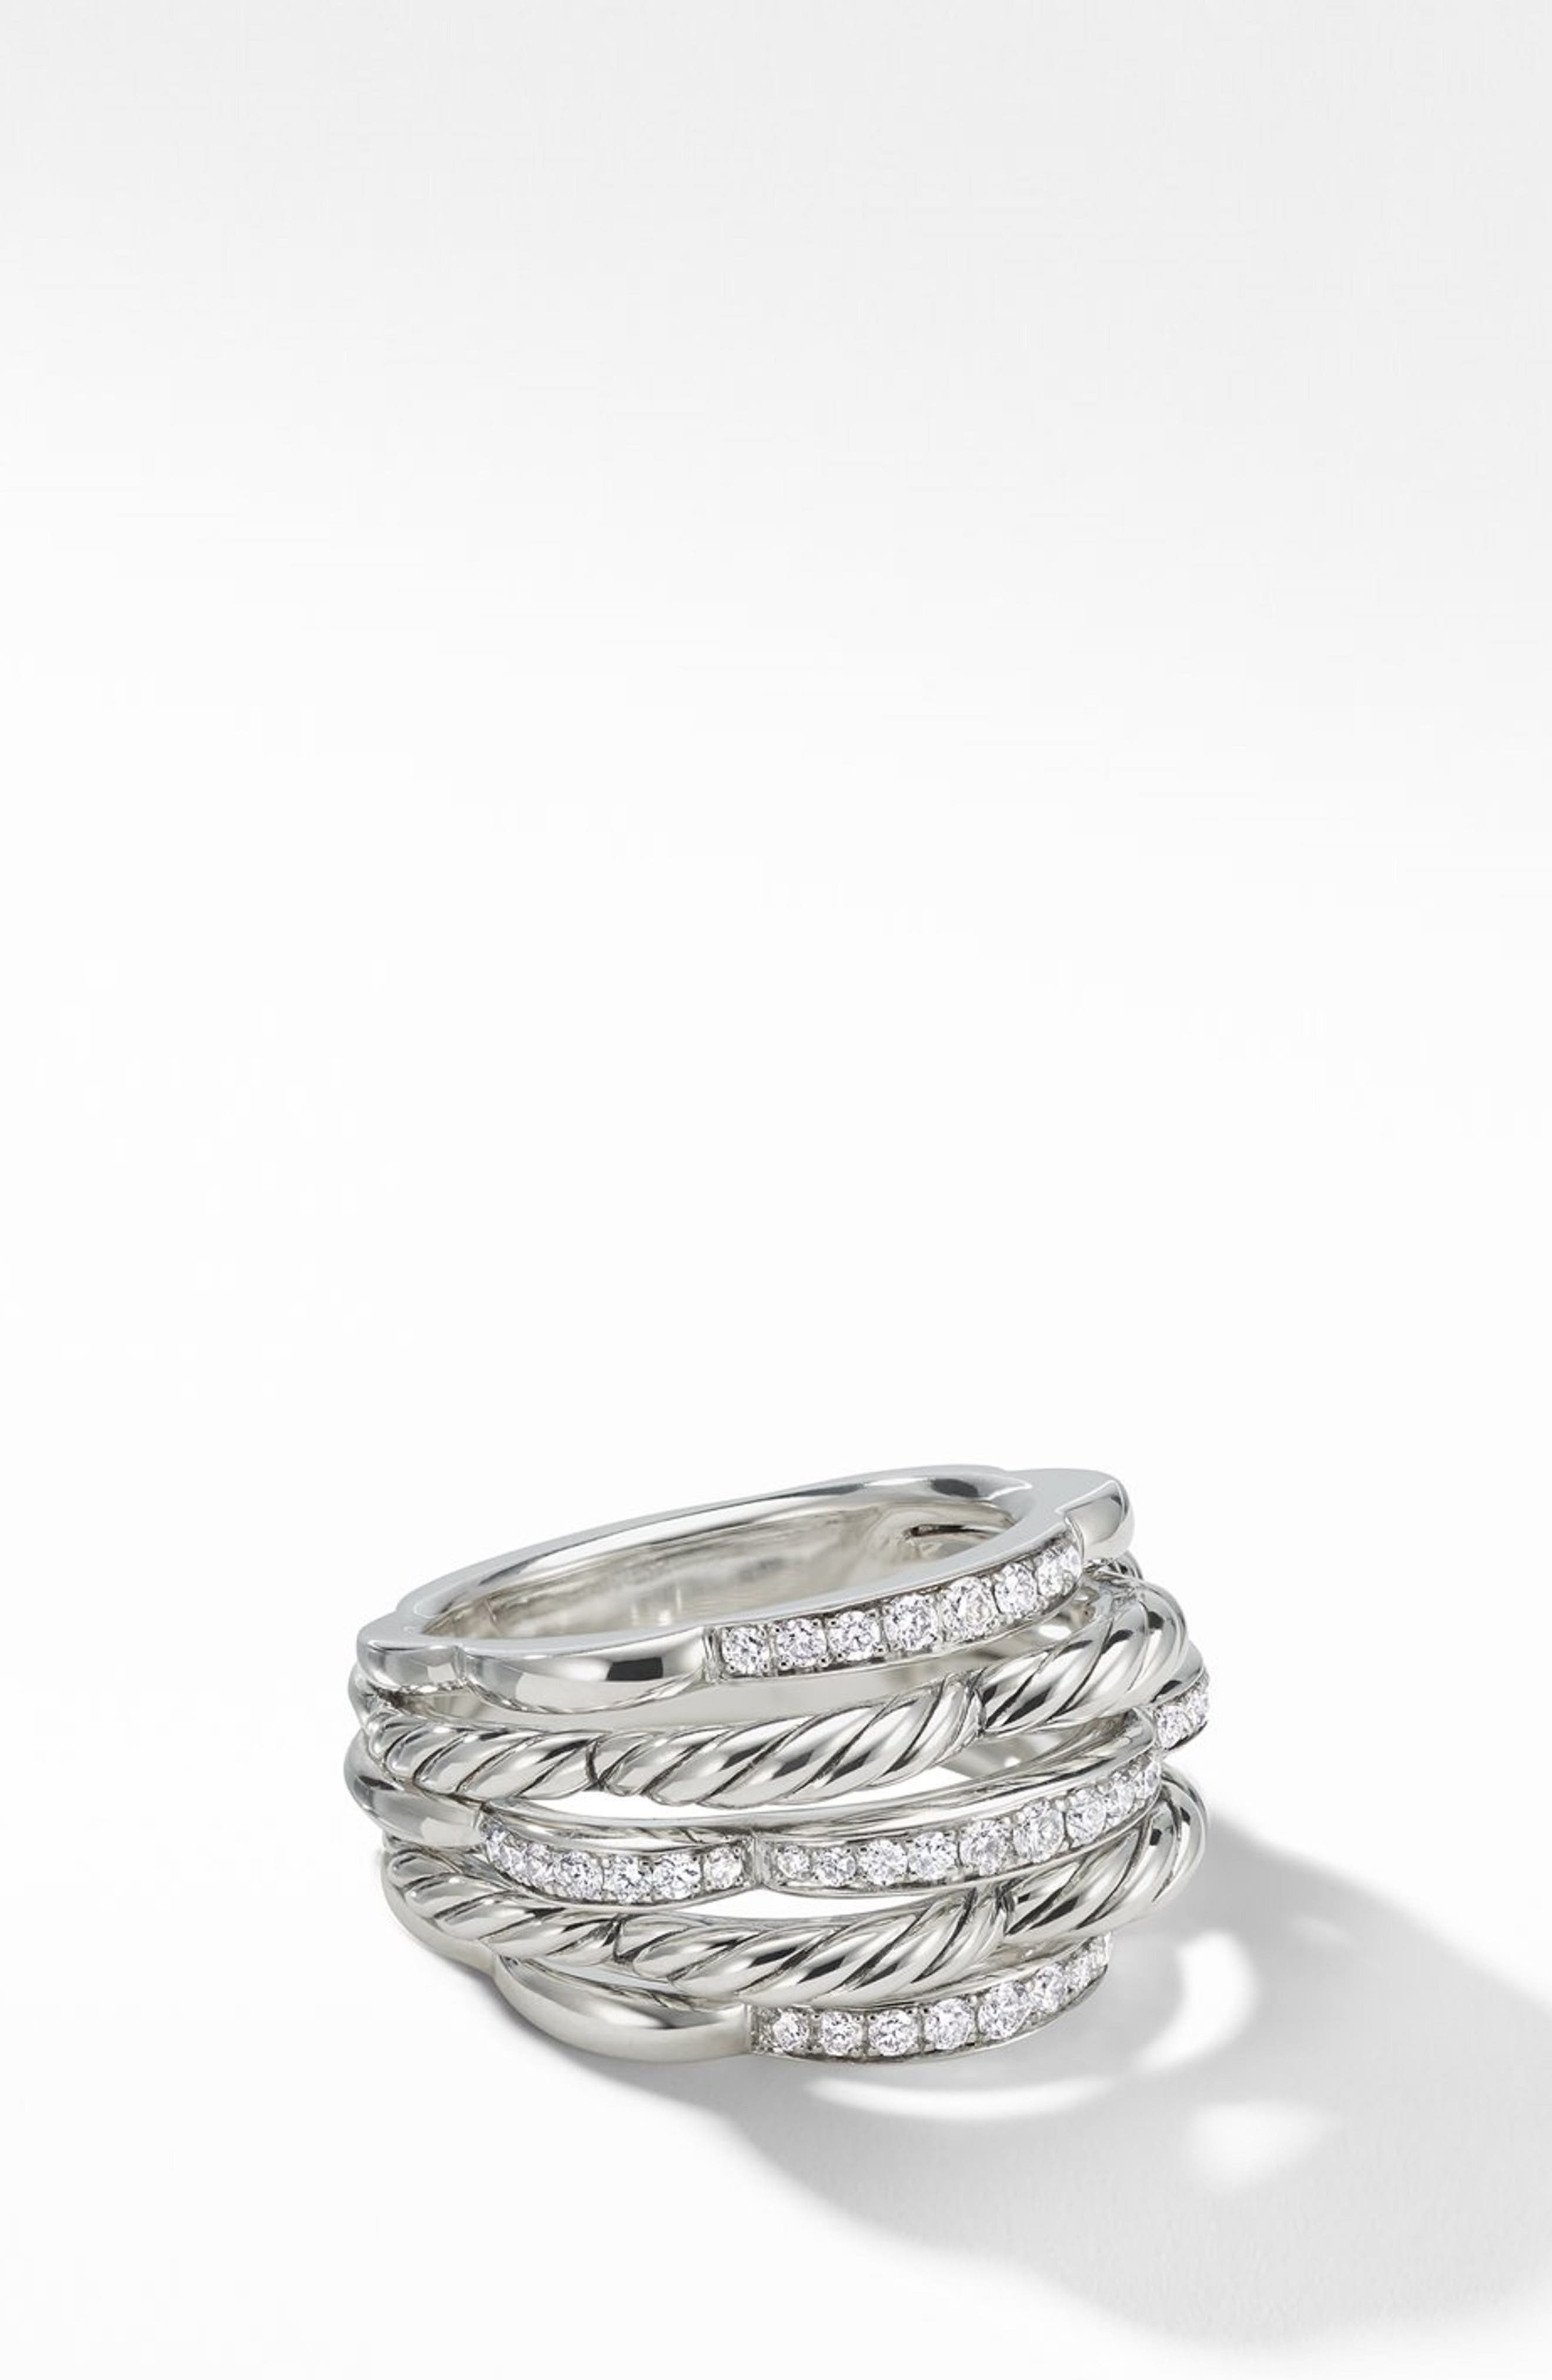 Tides Dome Ring with Diamonds,                         Main,                         color, STERLING SILVER/ DIAMOND